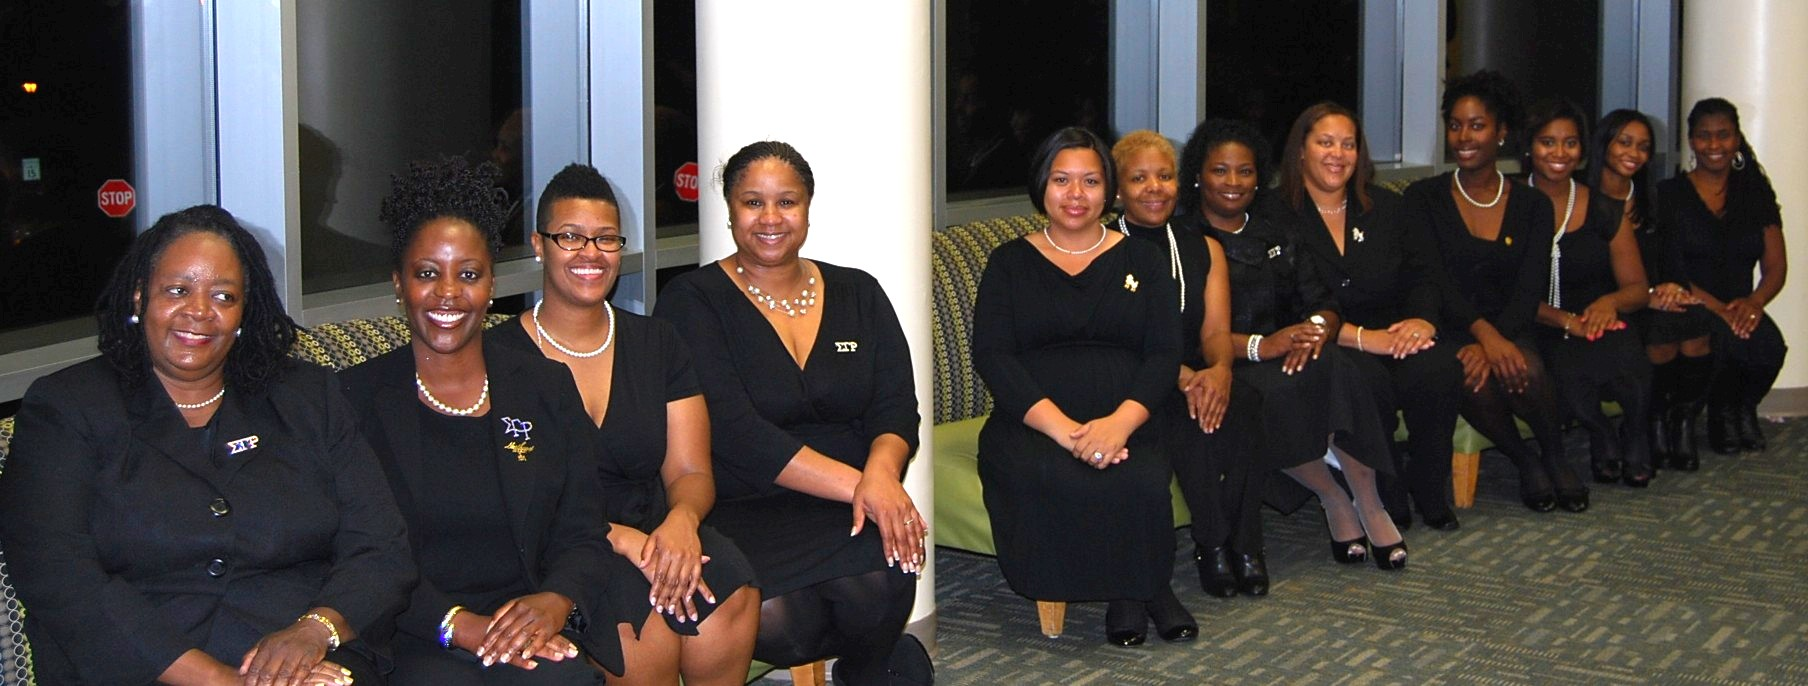 Founders Day 2012